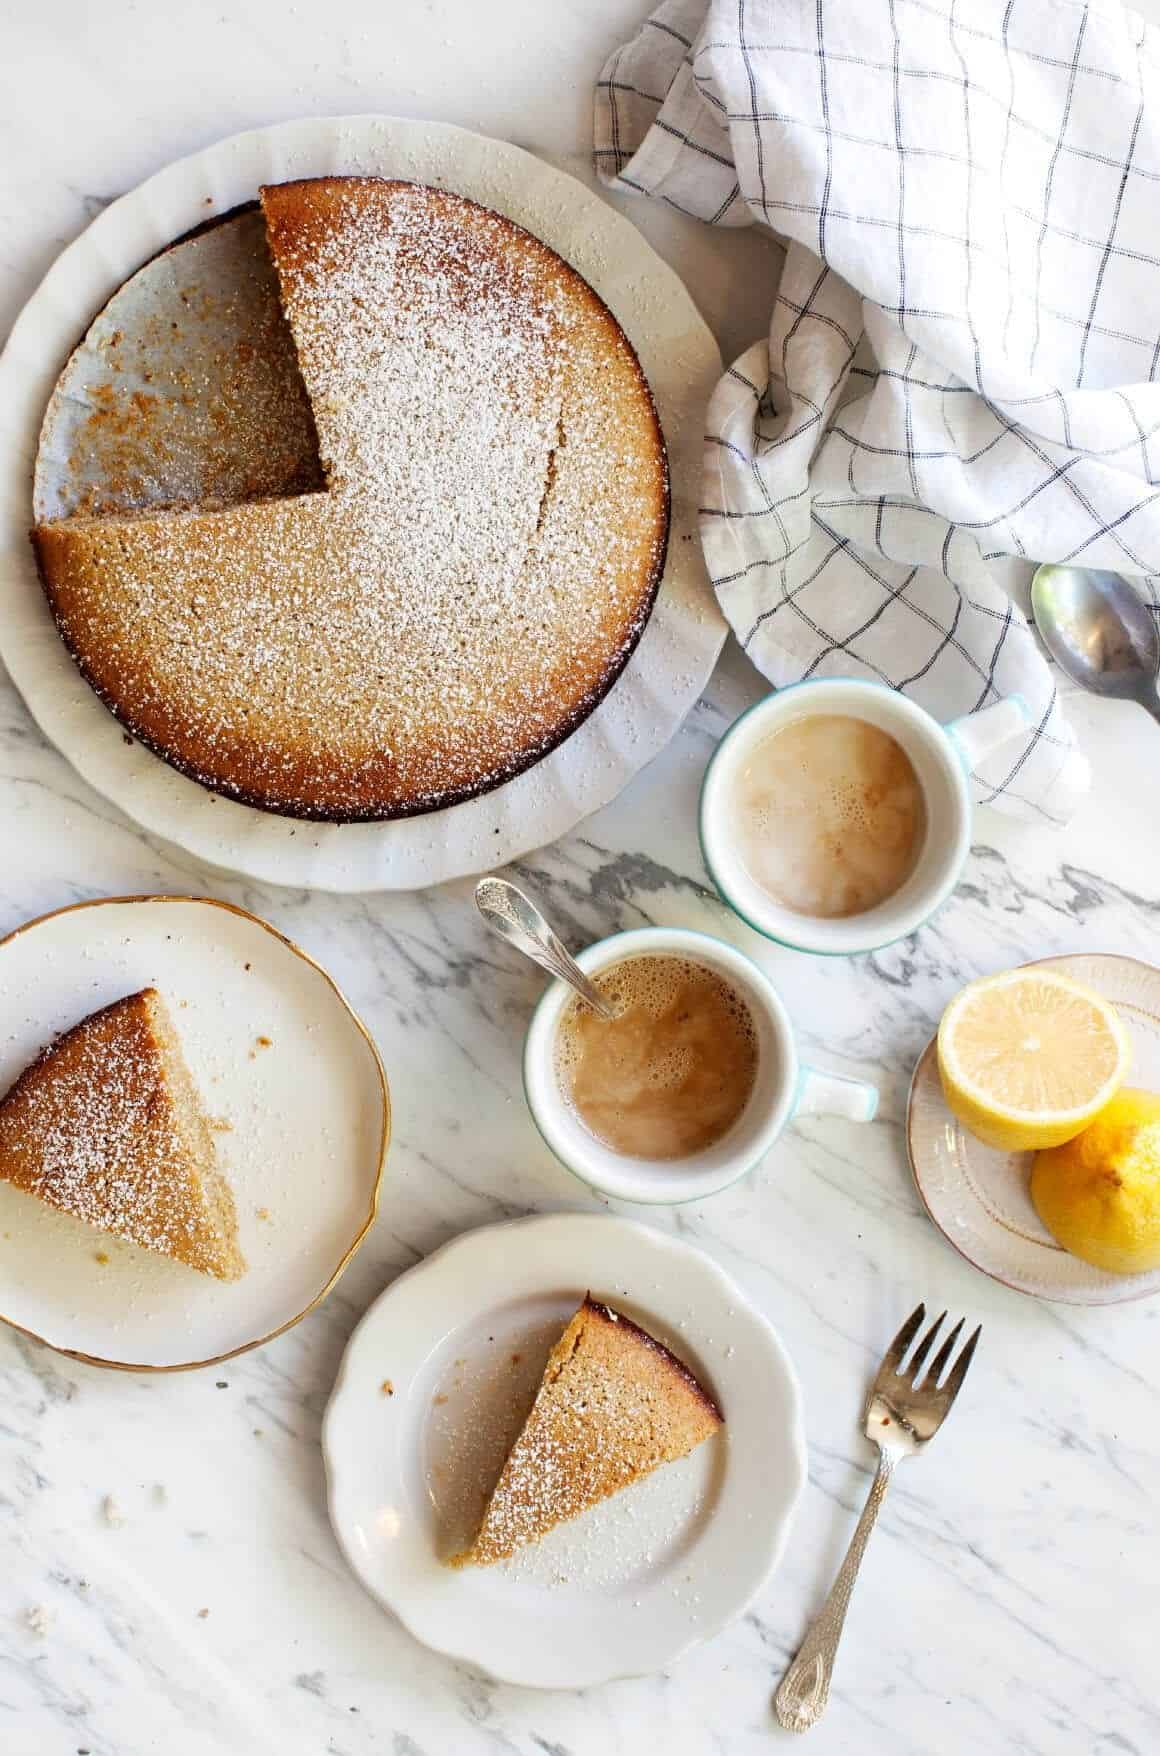 Julia Turshen's Afternoon Lemon Cake